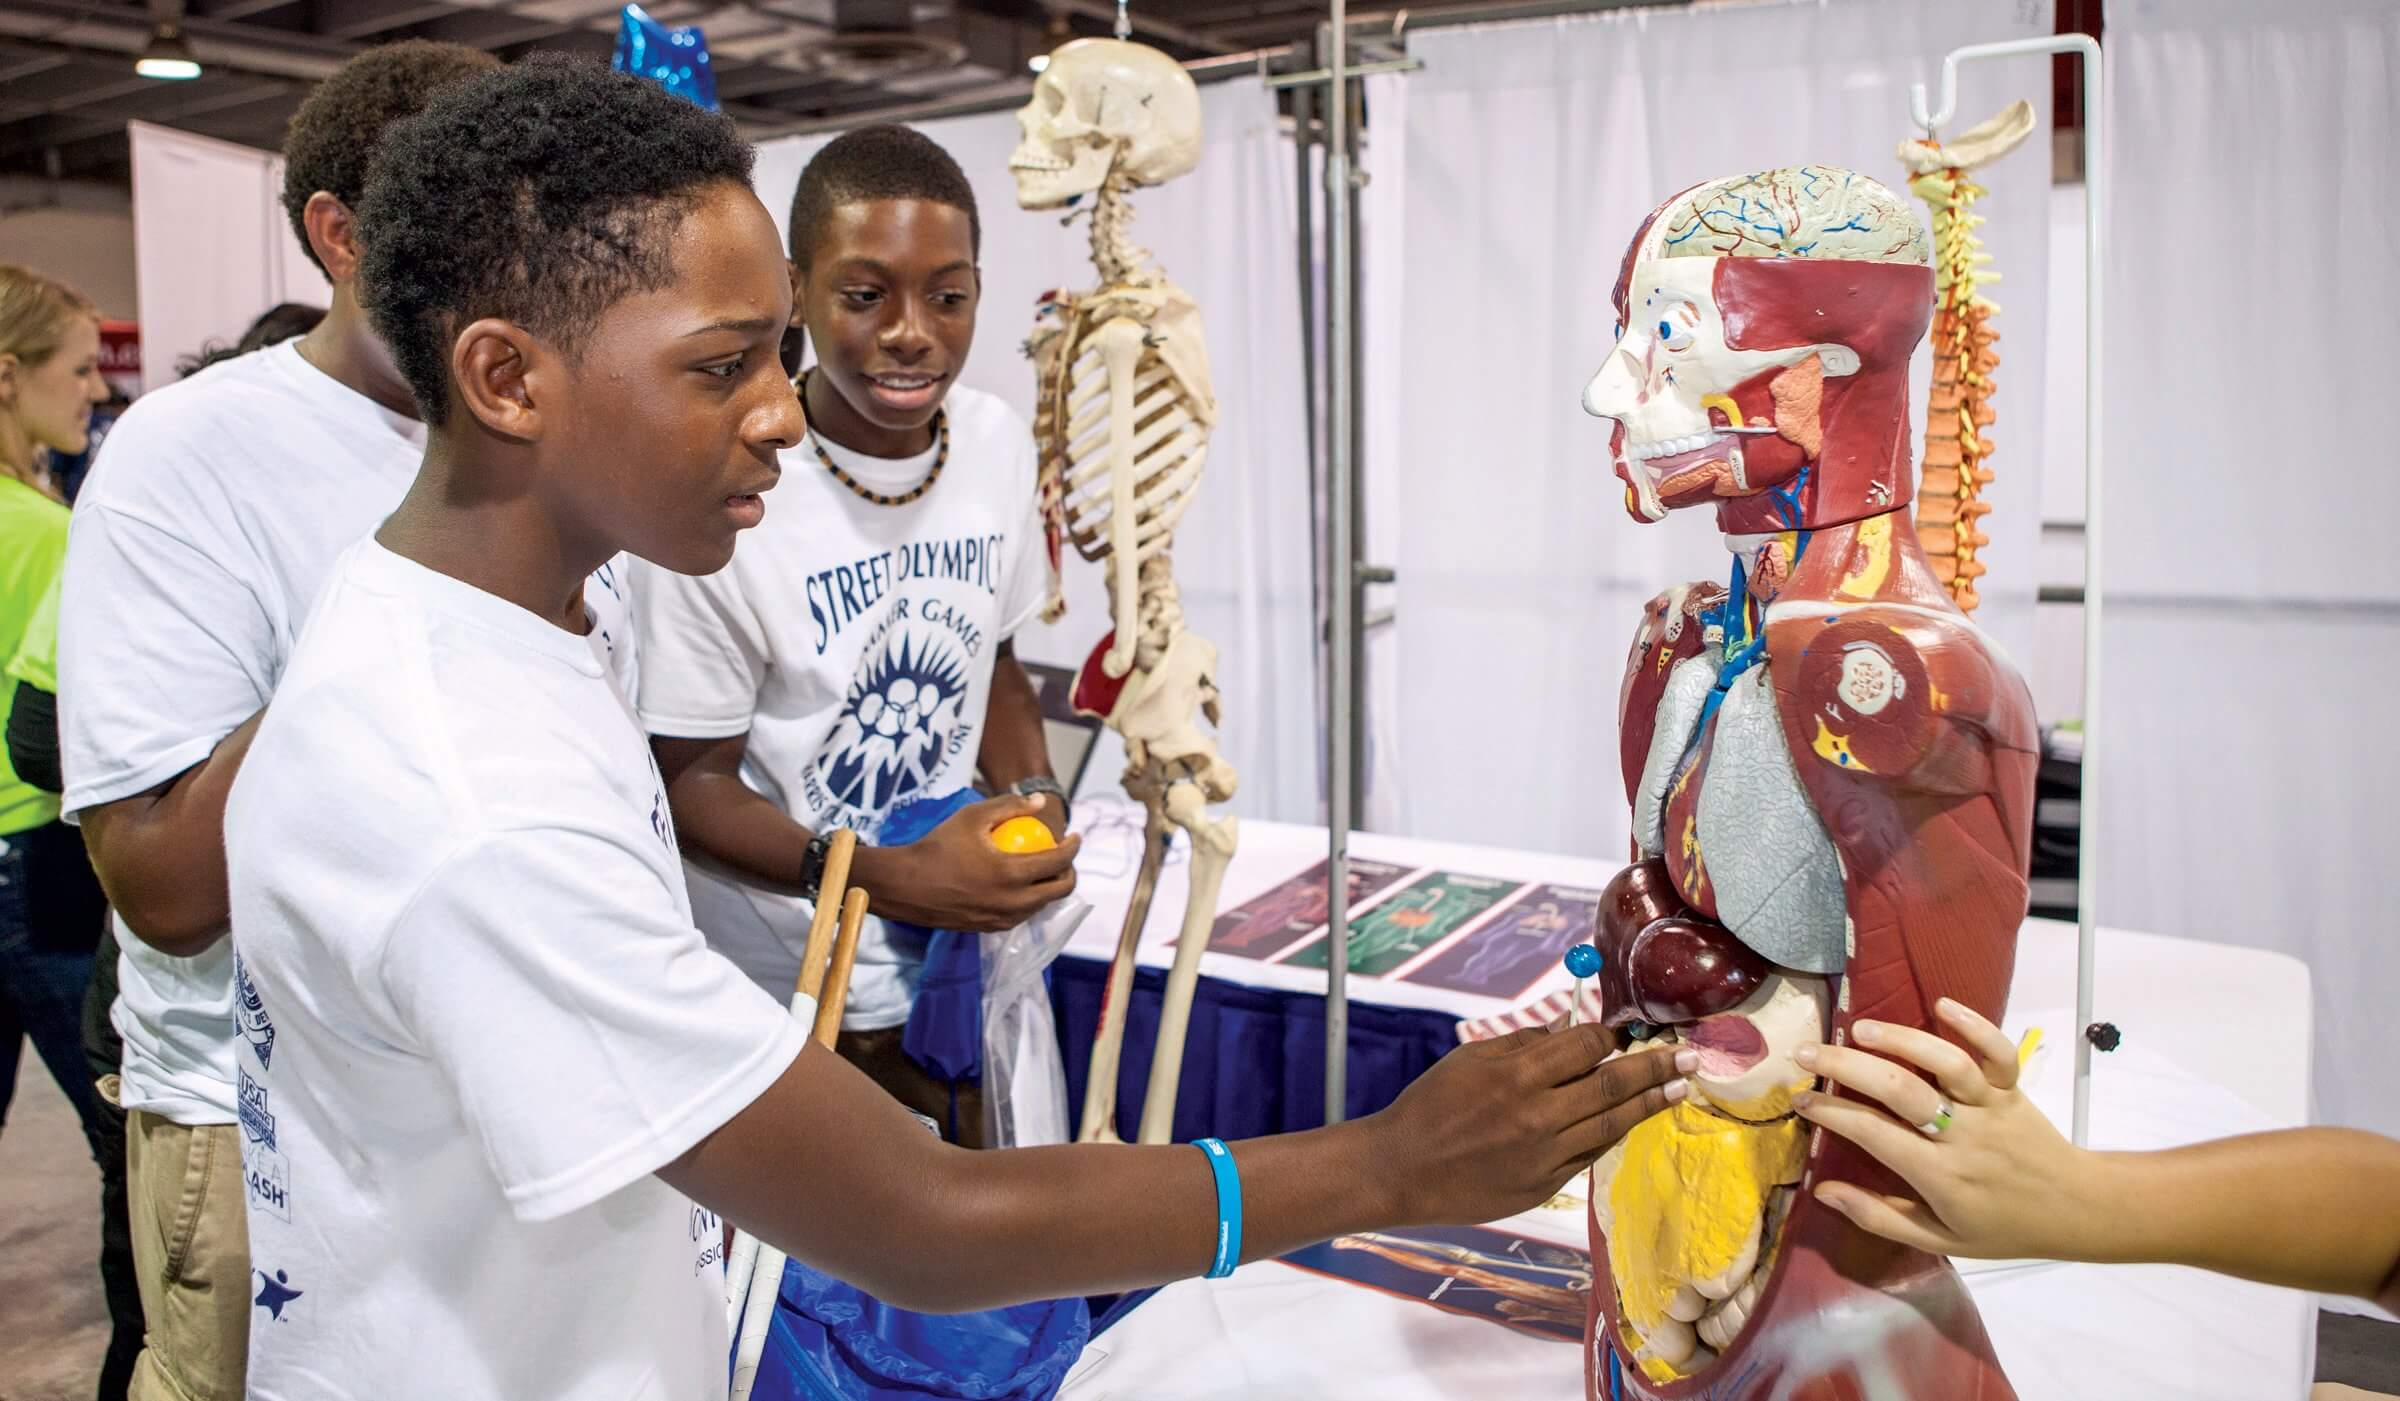 At the booth for the Texas Medical Center, athletes are able to interact with a display that demonstrates different parts of the human anatomy.